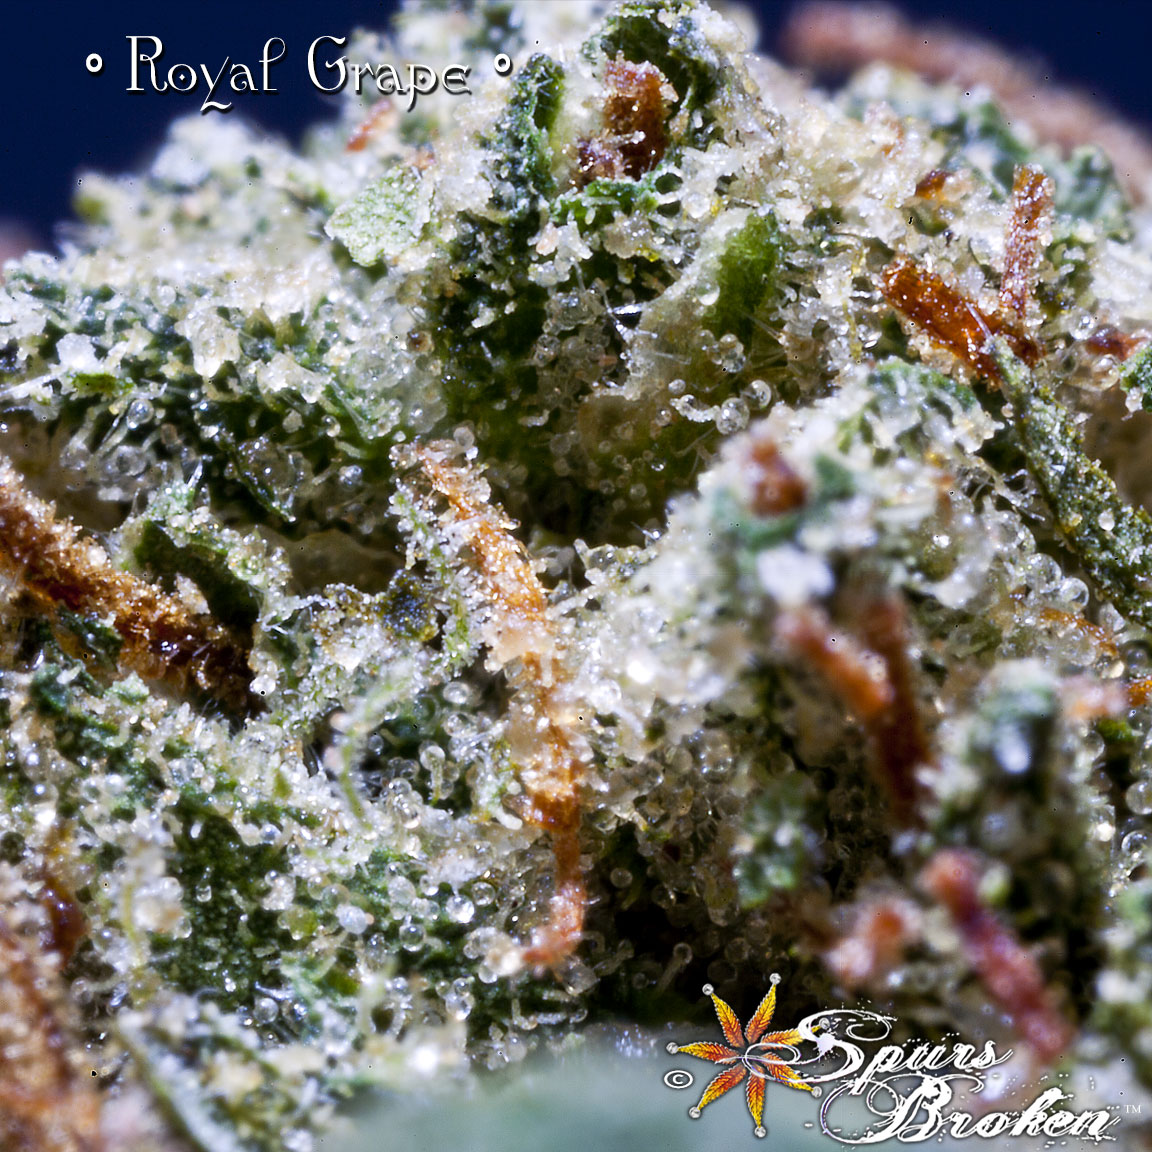 Royal Grape - Cannabis Macro Photography by Spurs Broken (Robert R. Sanders)